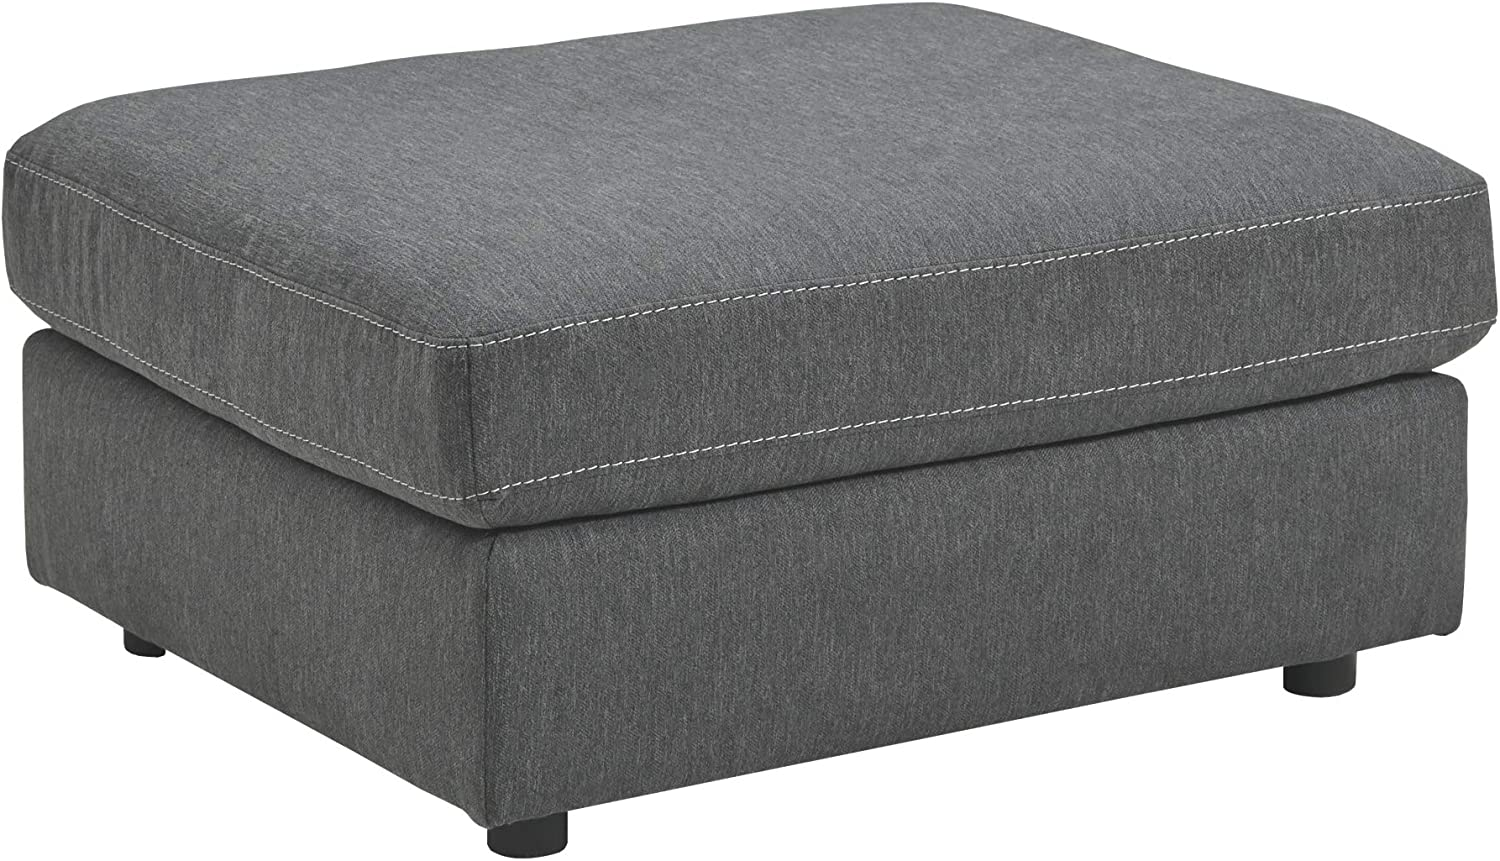 Signature Design by Ashley - Candela Oversized Accent Ottoman, Charcoal